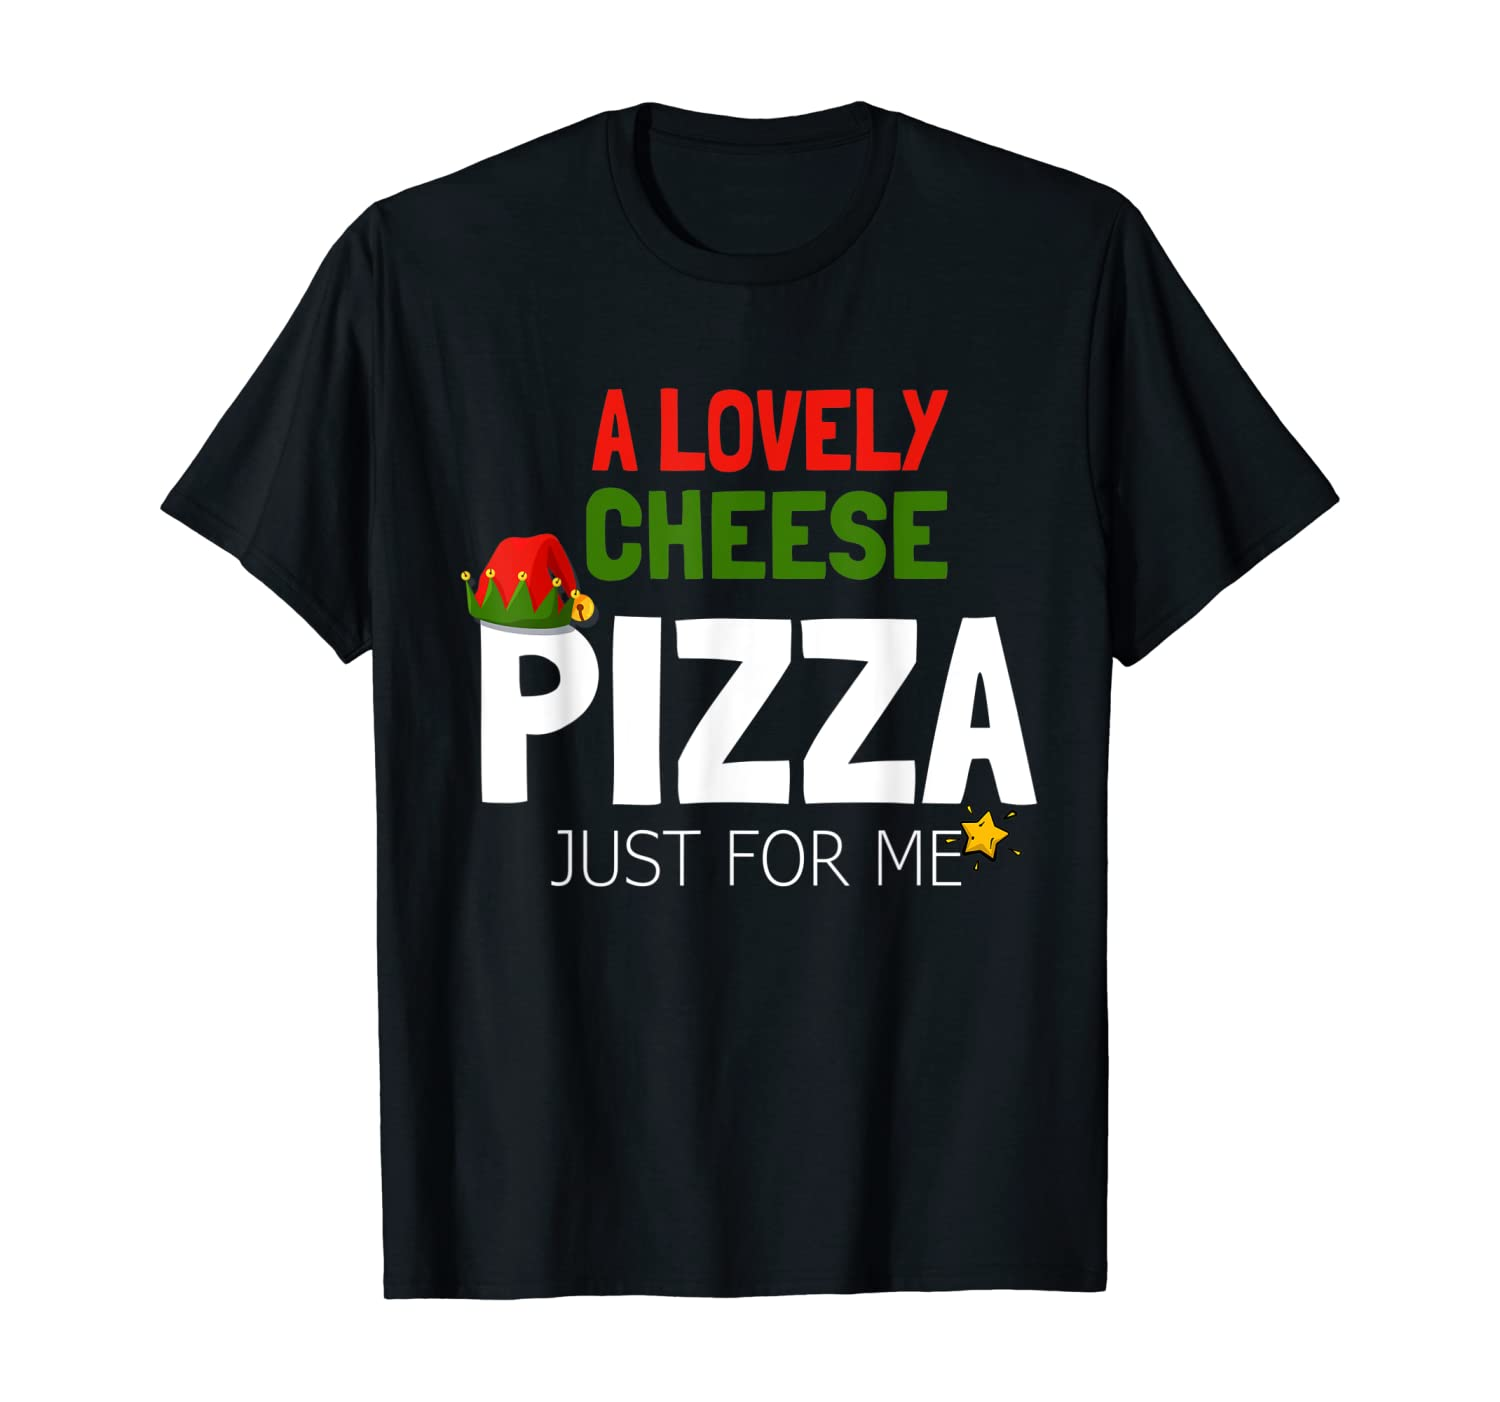 A Lovely Cheese Pizza Just For Me Alone Home Christmas Gift T-Shirt